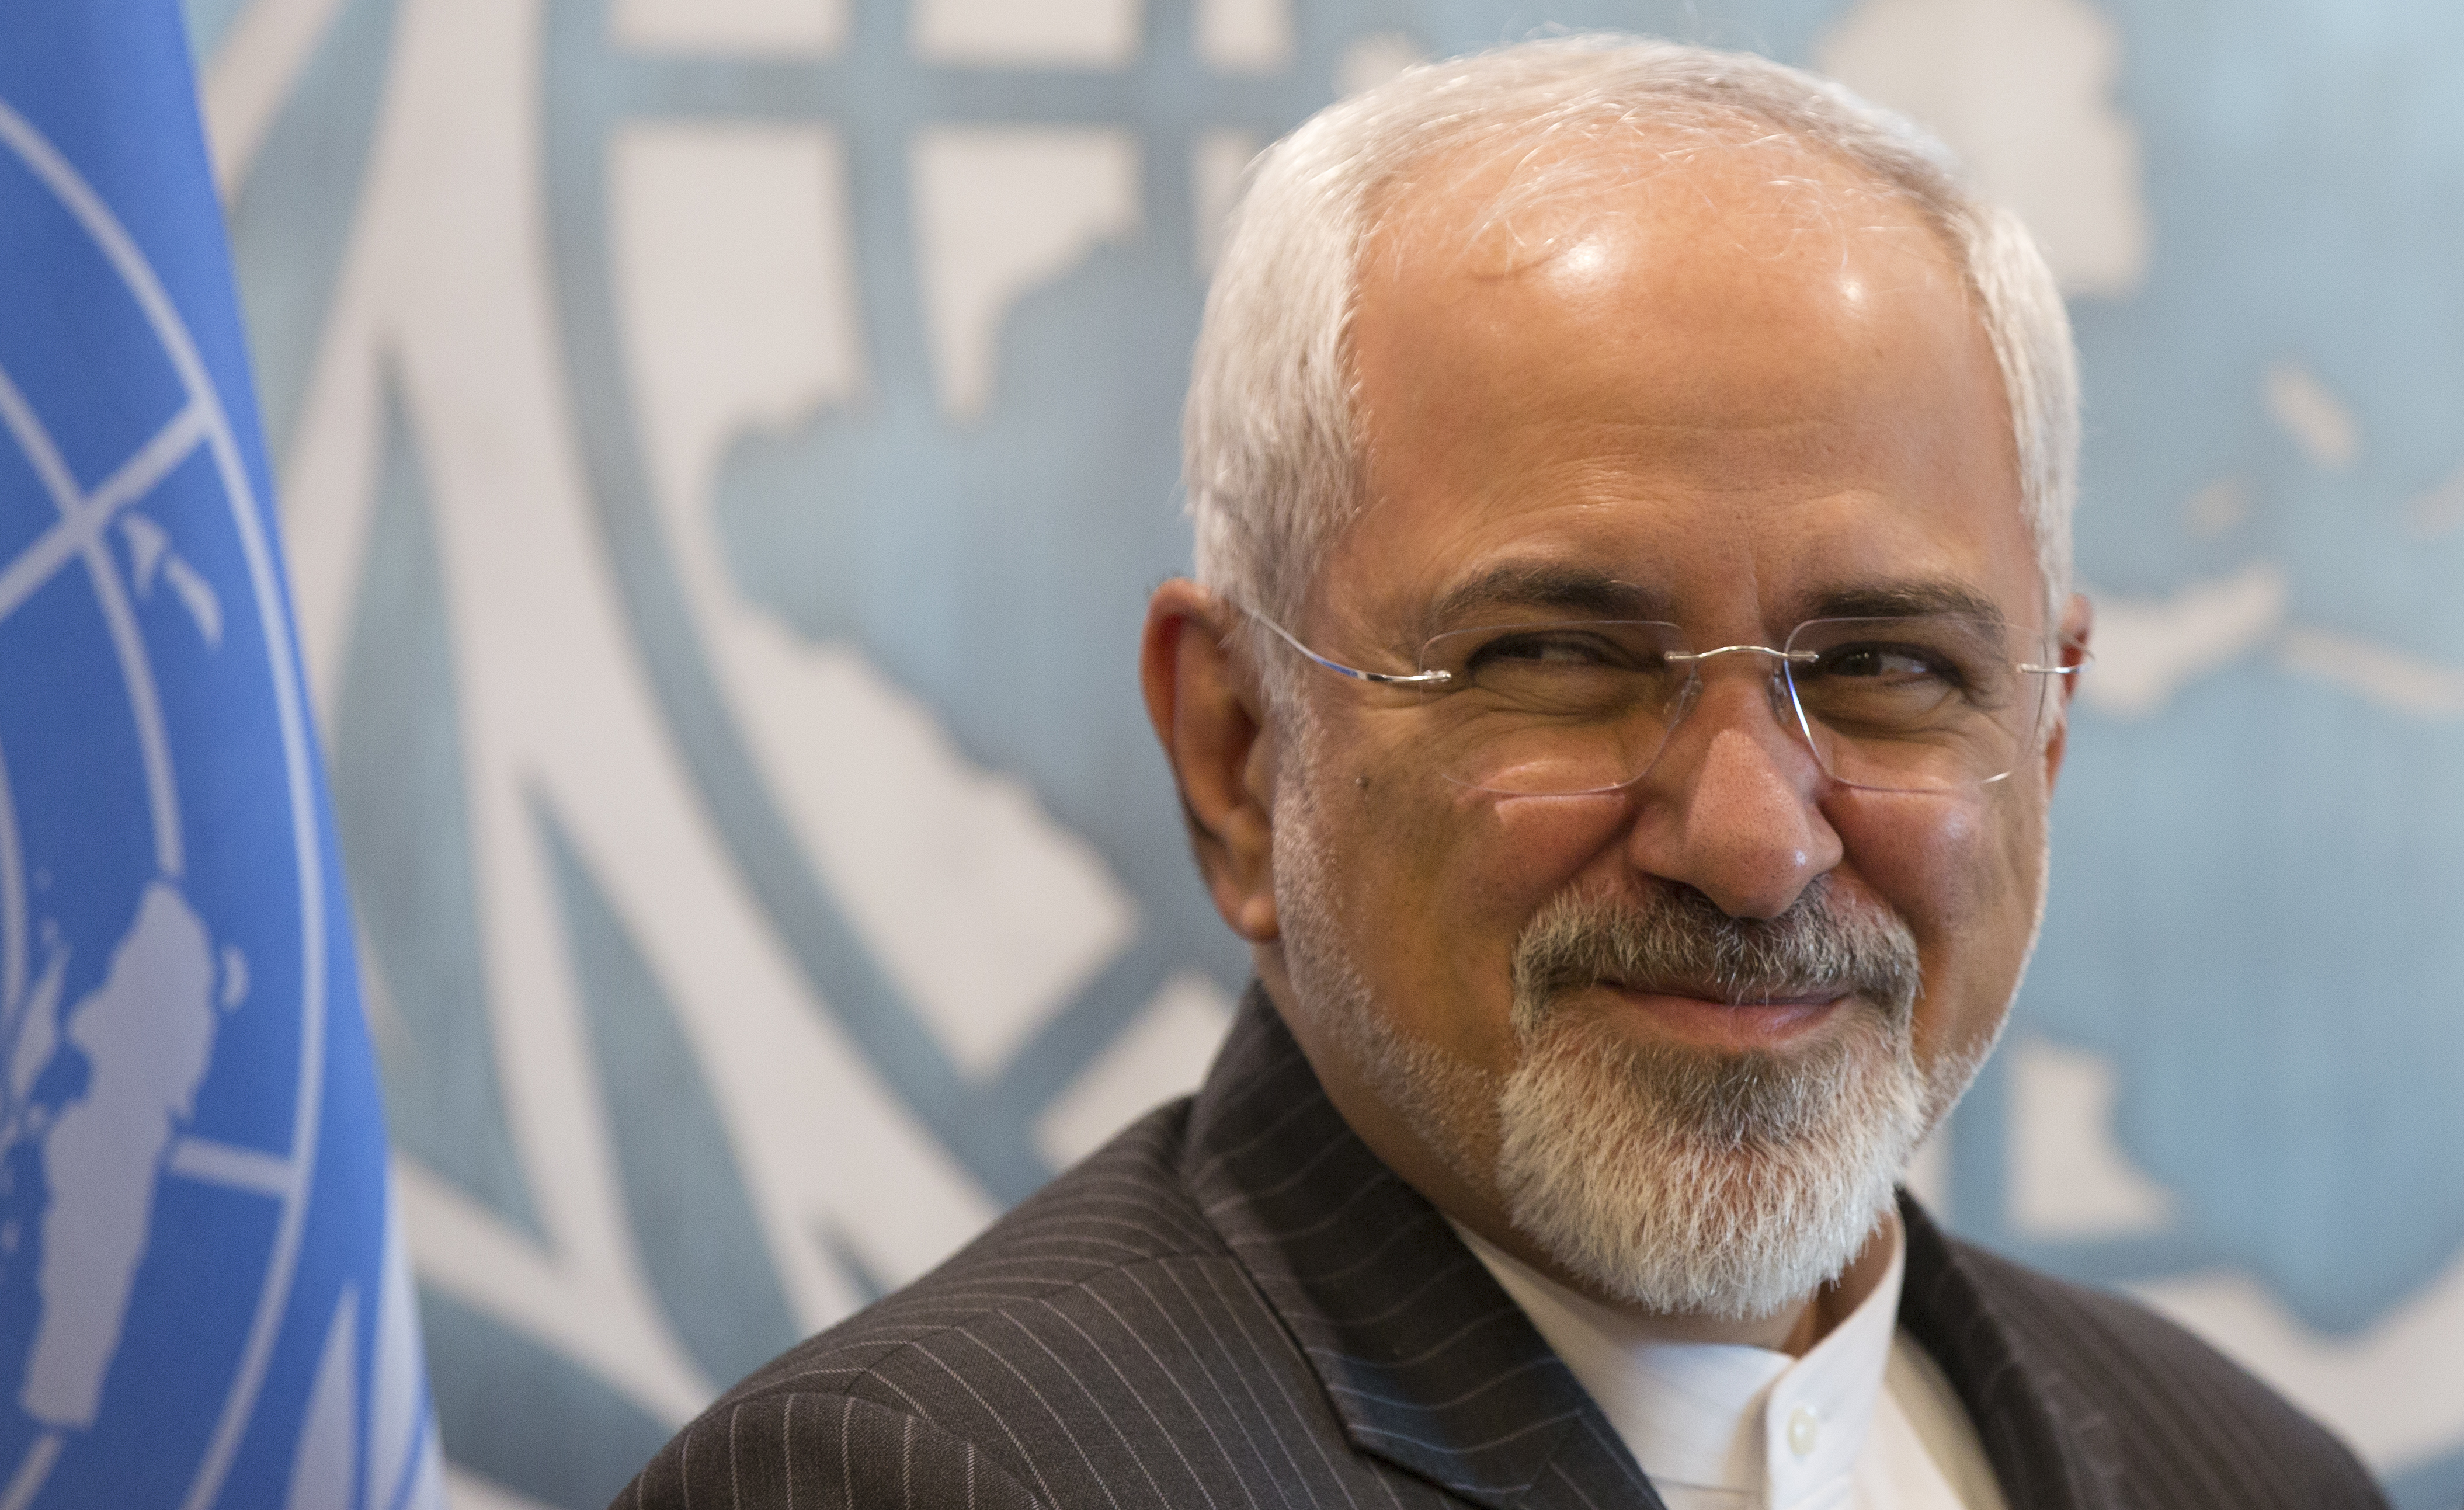 Mohammad Javad Zarif, Minister for Foreign Affairs of the Islamic Republic of Iran  at the United Nations Headquarters in New York City.